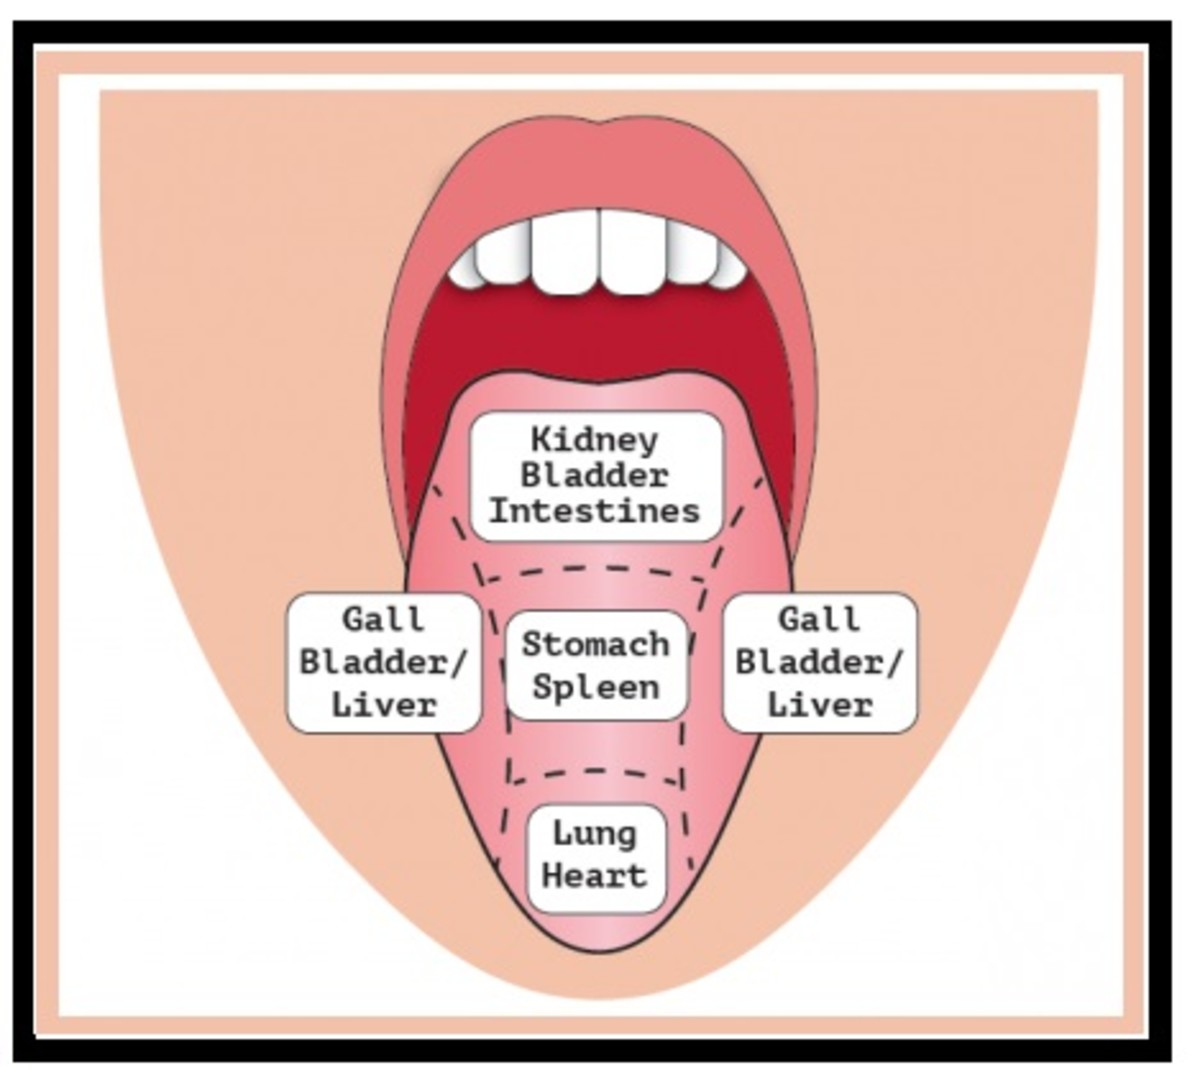 The tongue is used to determine the condition of the body.